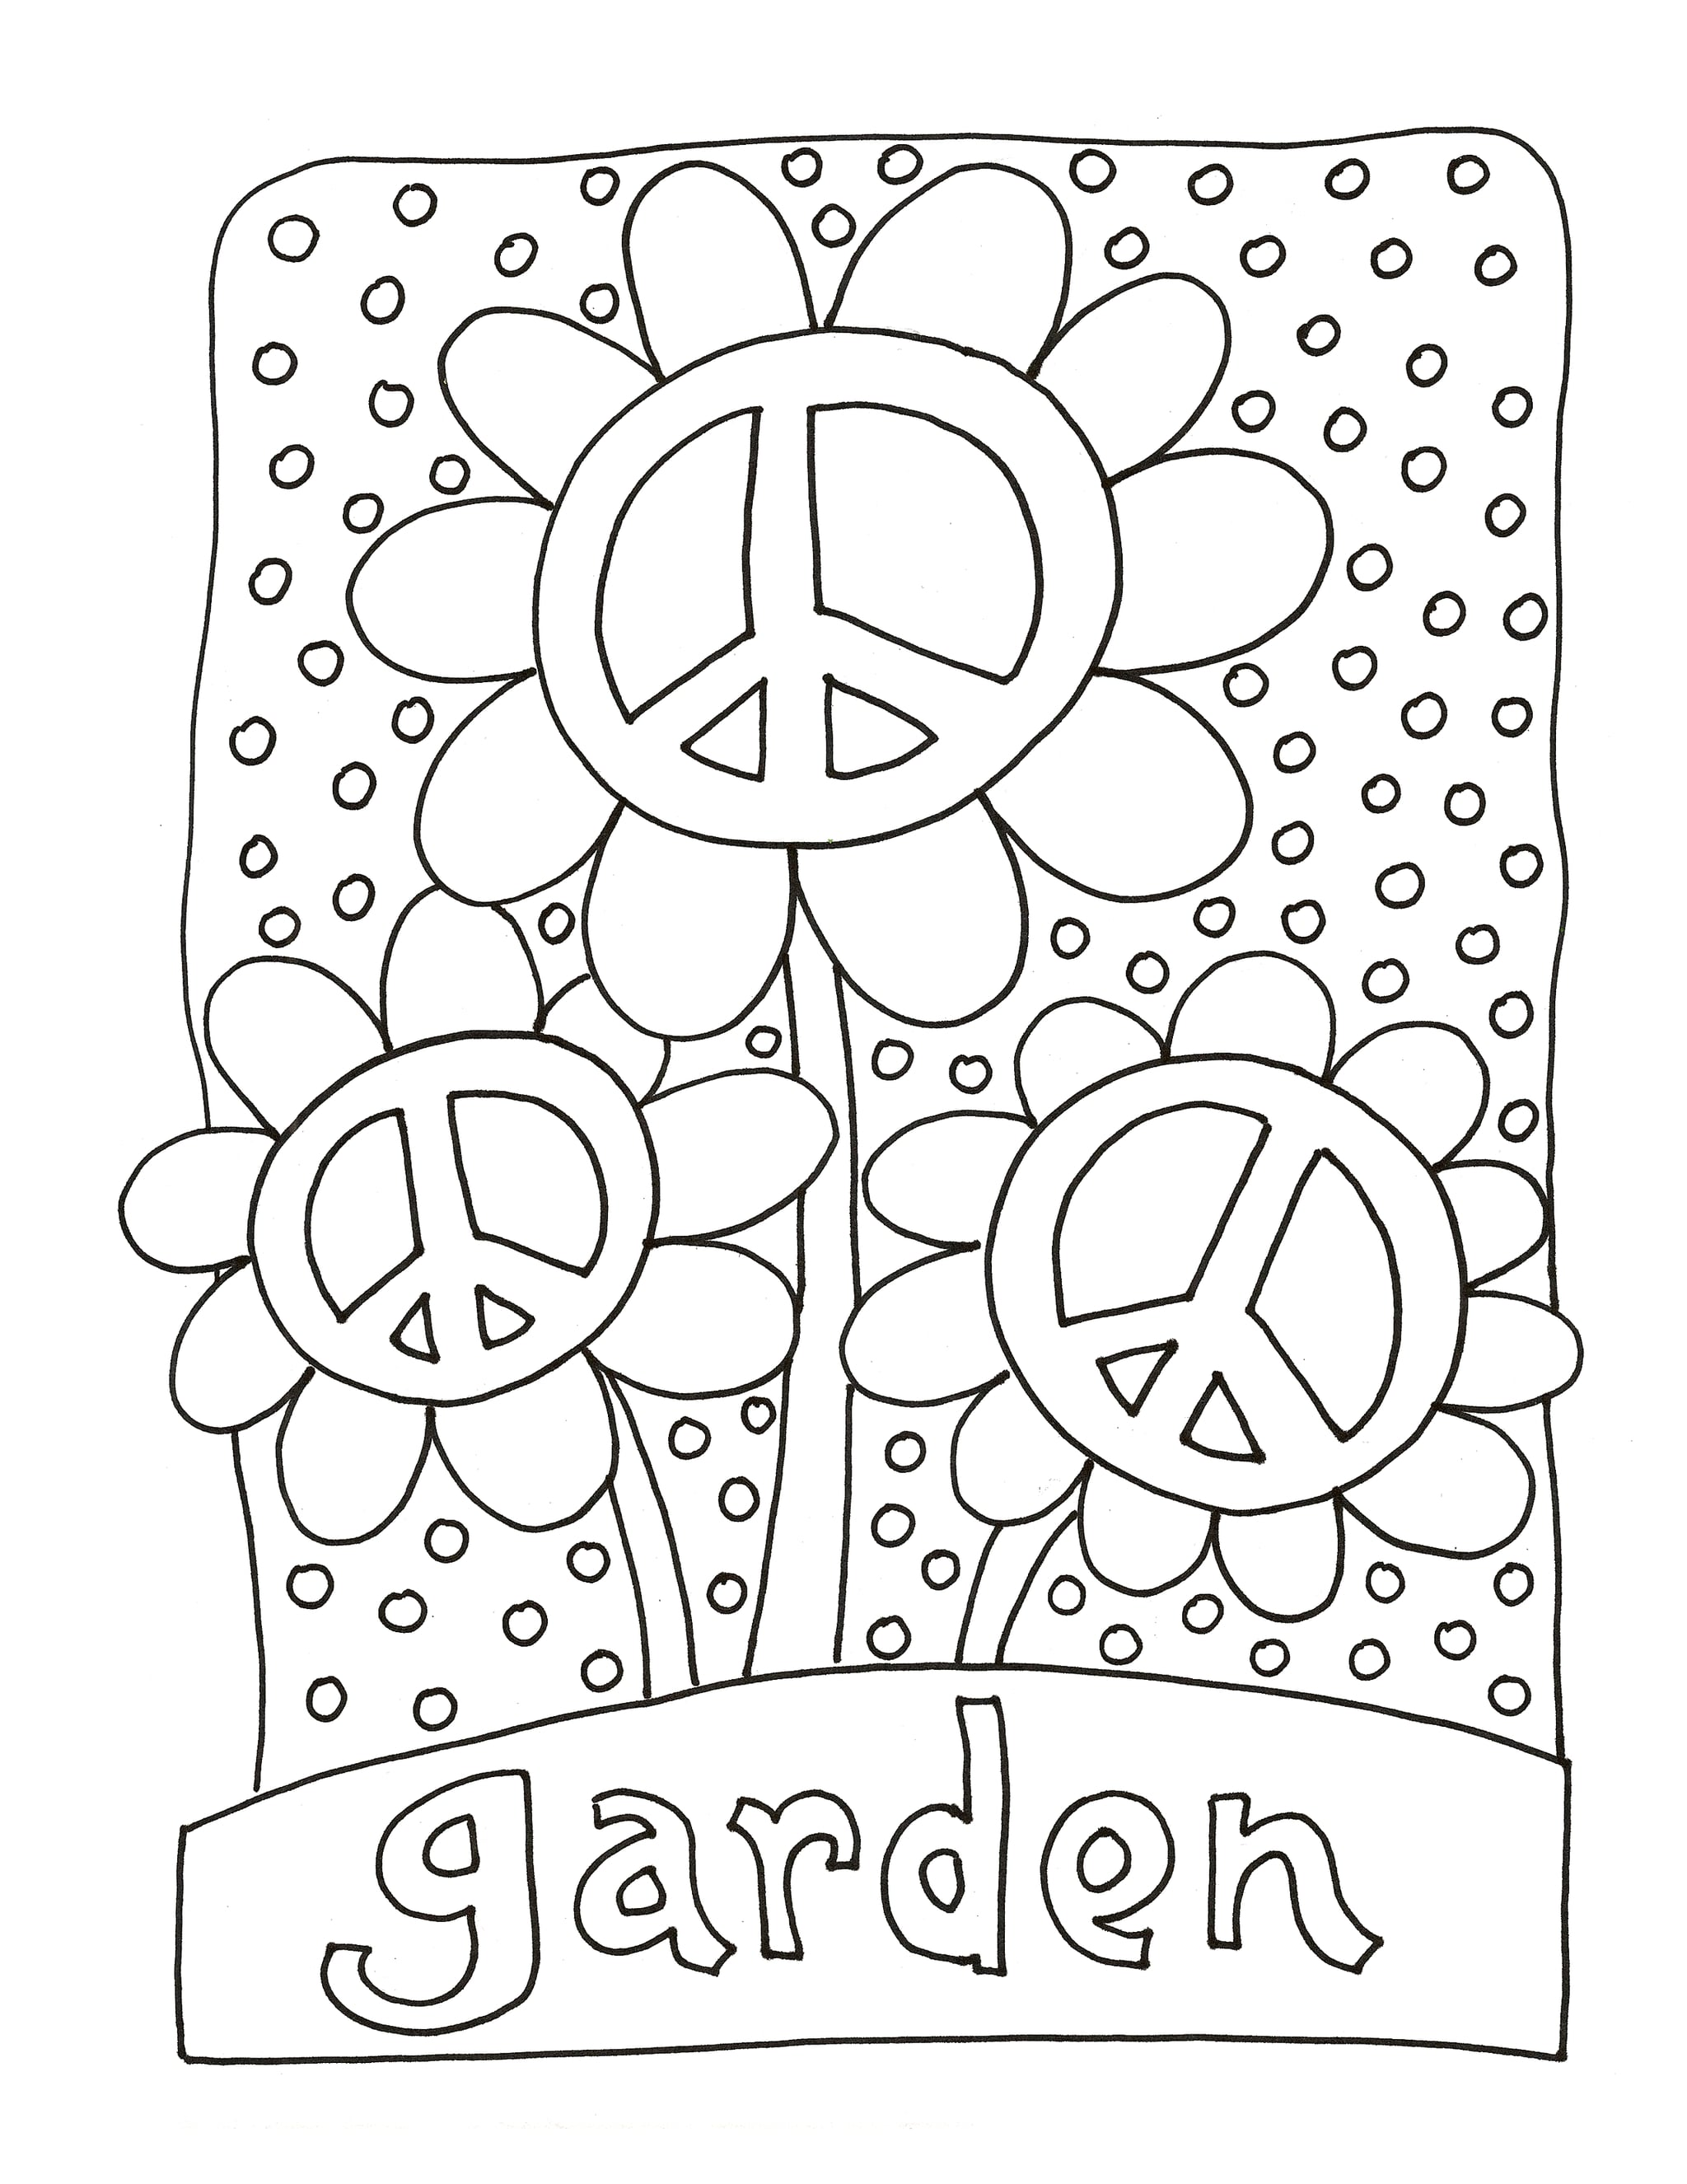 Get the coloring page: Garden | 50 Printable Adult Coloring Pages That Will  Help You De-Stress | POPSUGAR Smart Living Photo 43